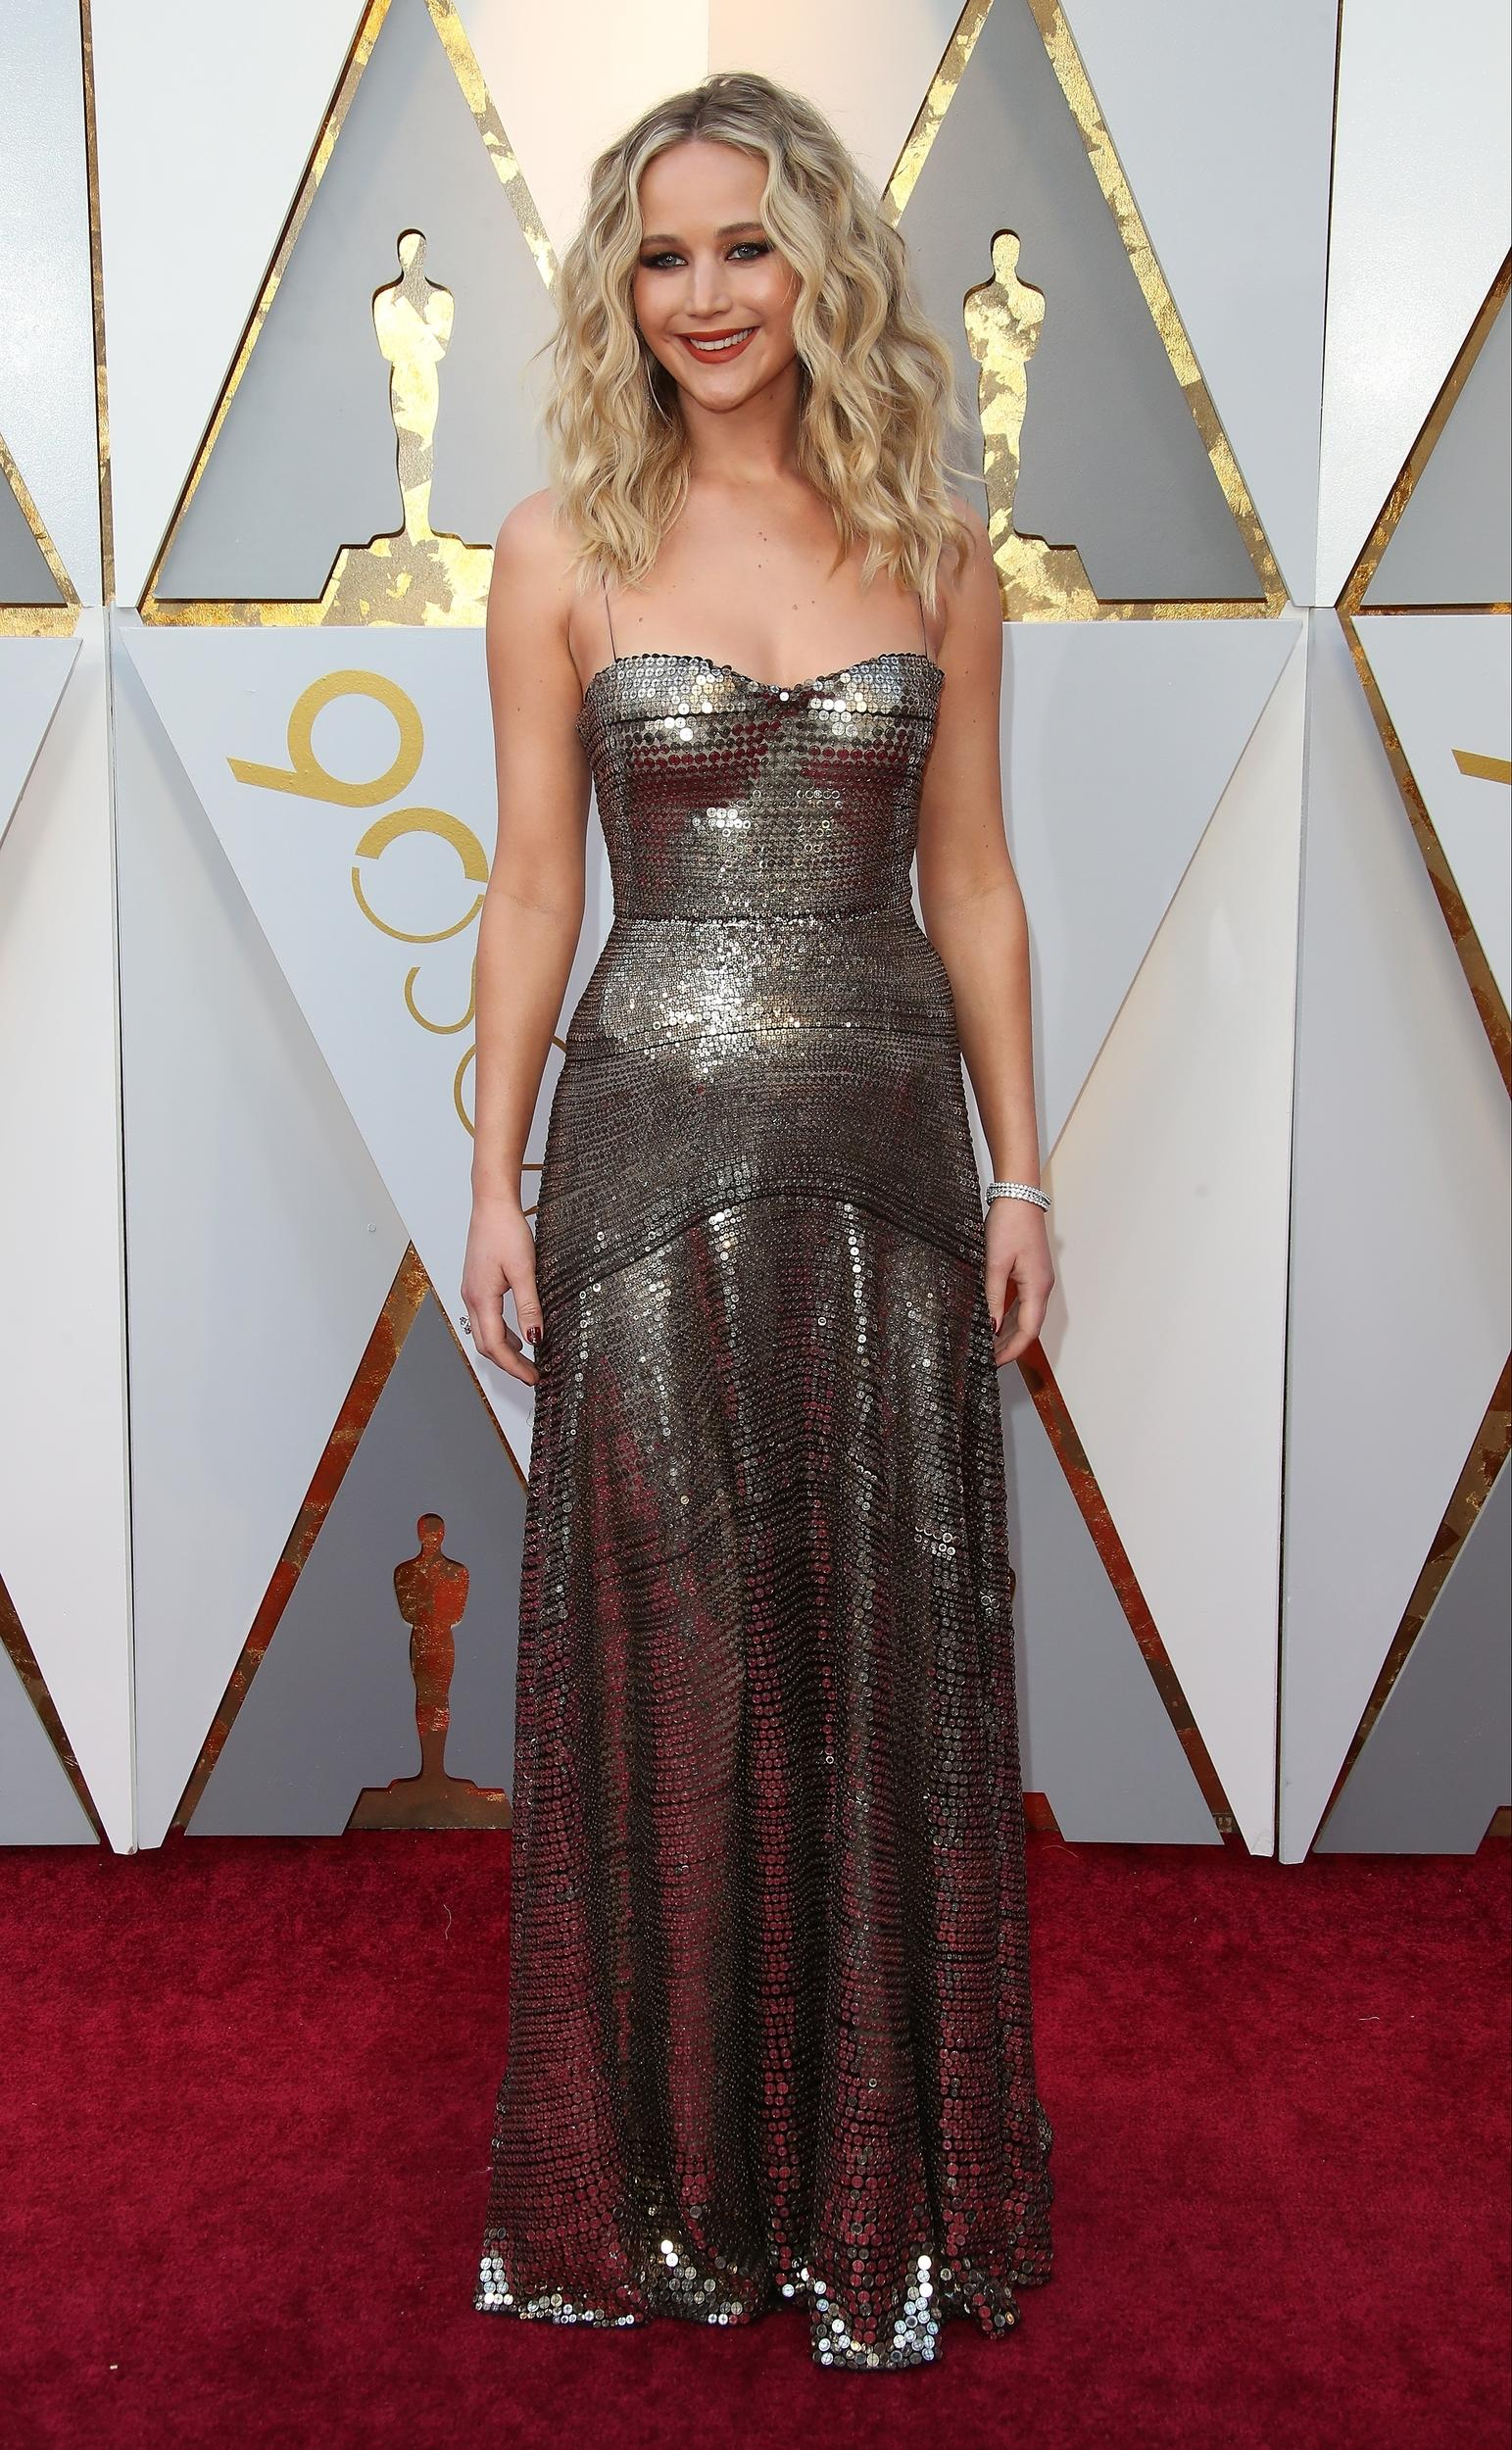 HOLLYWOOD, CA - MARCH 04: Actor Jennifer Lawrence attends the 90th Annual Academy Awards at Hollywood & Highland Center on March 4, 2018 in Hollywood, California. (Photo by Dan MacMedan/WireImage)